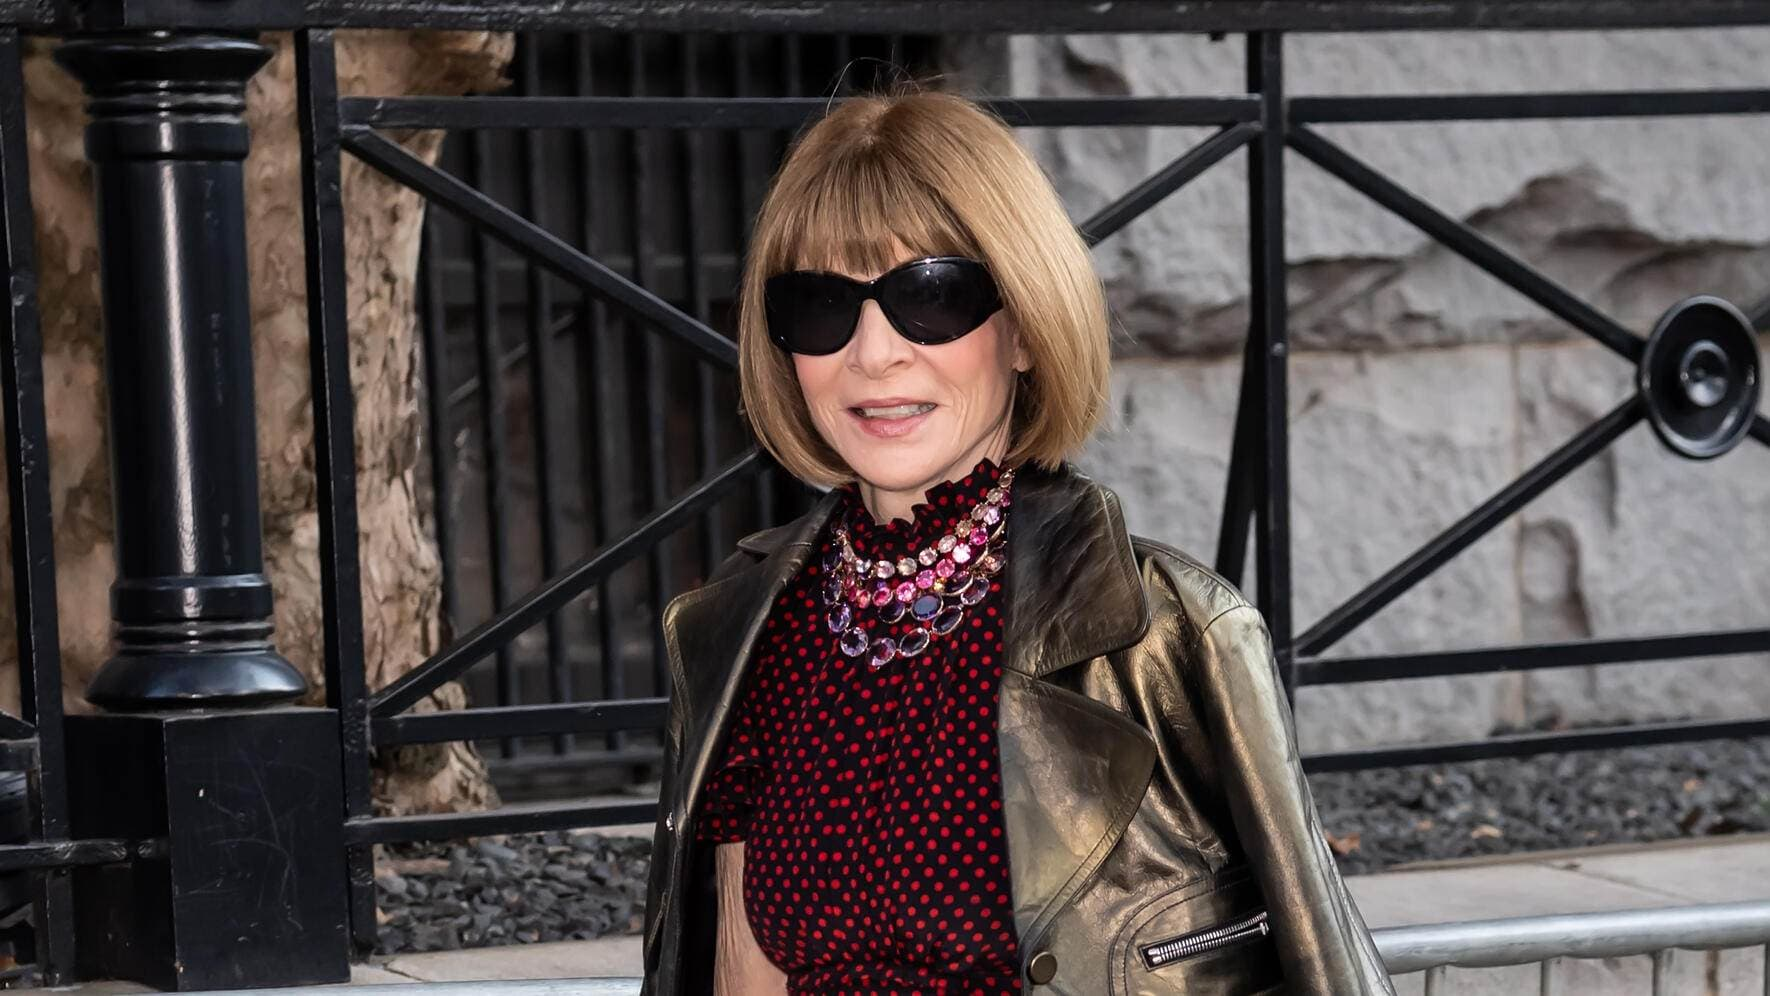 NEW YORK, NEW YORK - SEPTEMBER 11: Anna Wintour is seen arriving to  Marc Jacobs Spring 2020 Fashion Show at Park Avenue Armory during New York Fashion Week on September 11, 2019 in New York City. (Photo by Gilbert Carrasquillo/GC Images)